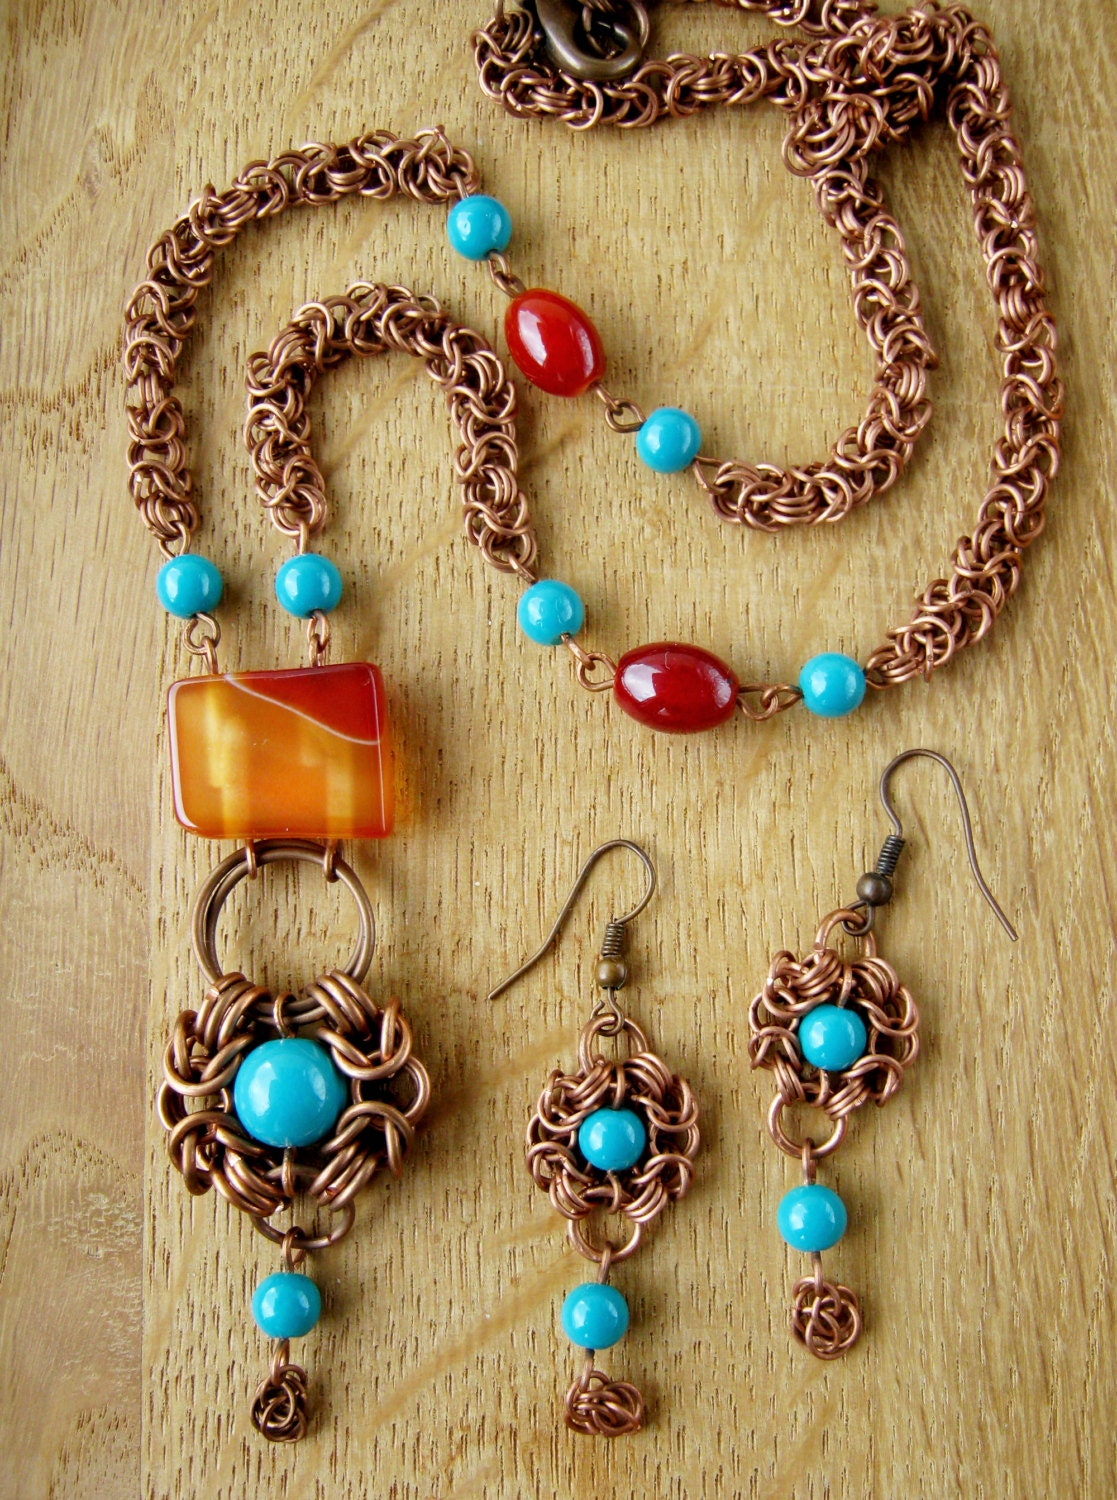 Handmade bohemian style jewelry. Copper necklace and earrings